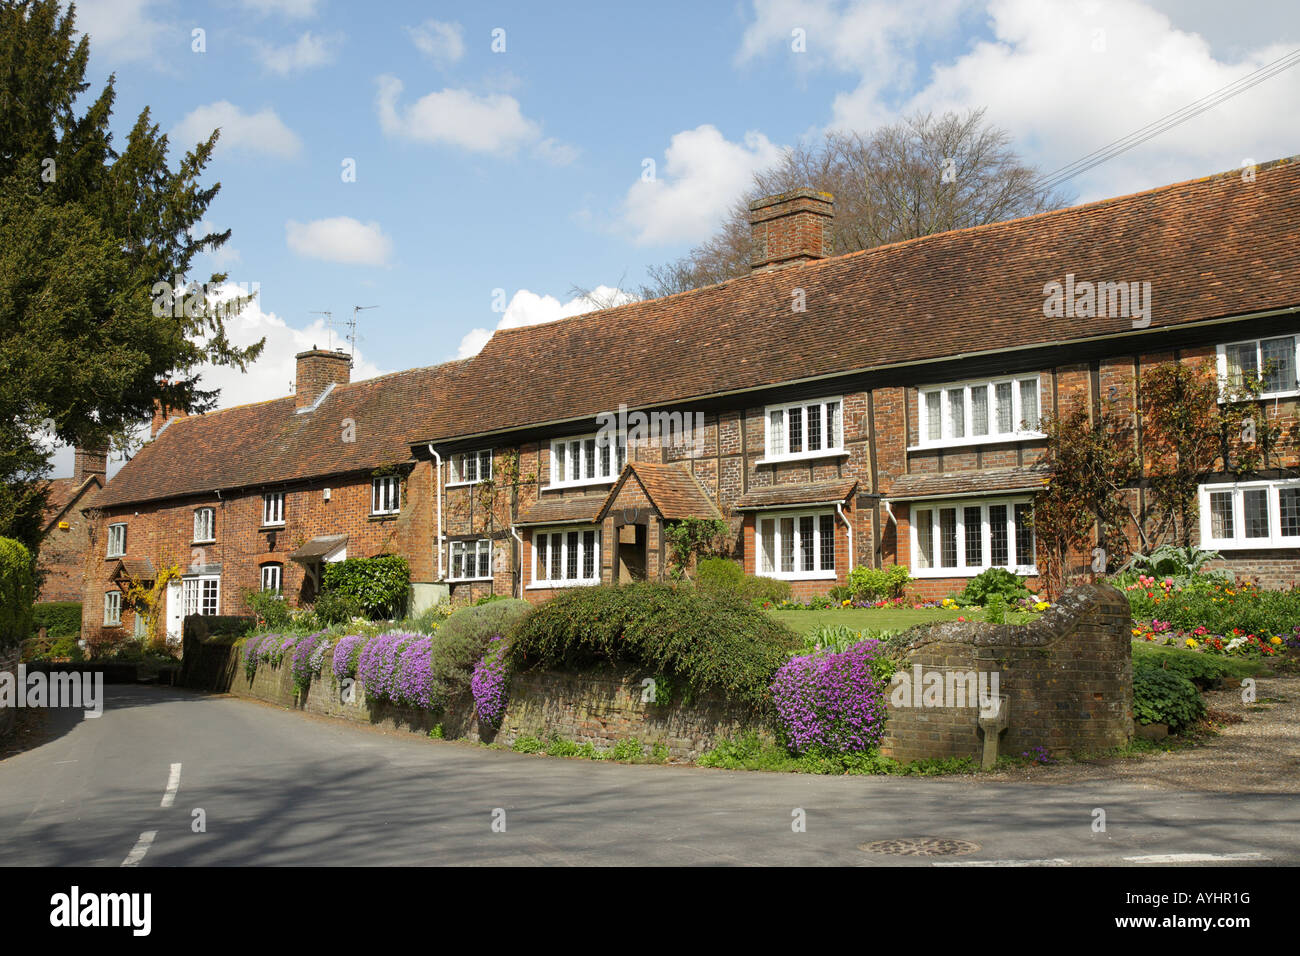 A row of cottages displaying Aubrietia in the small village of Ivinghoe in Buckinghamshire UK - Stock Image